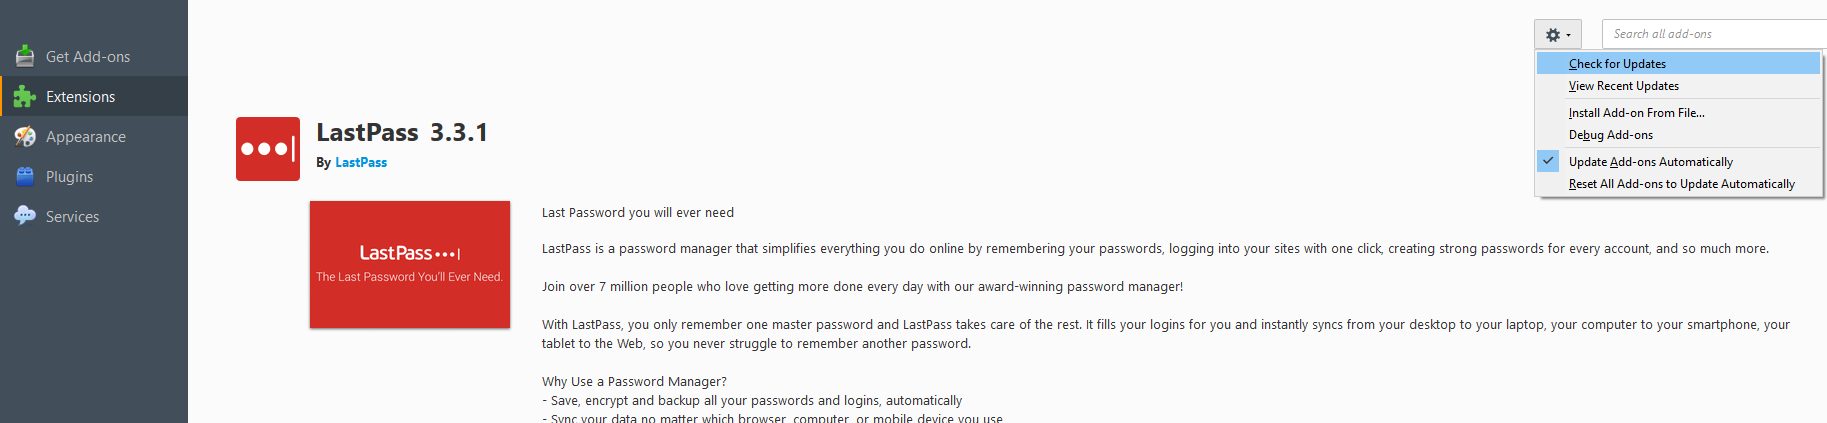 How to make sure you're using the latest version of LastPass